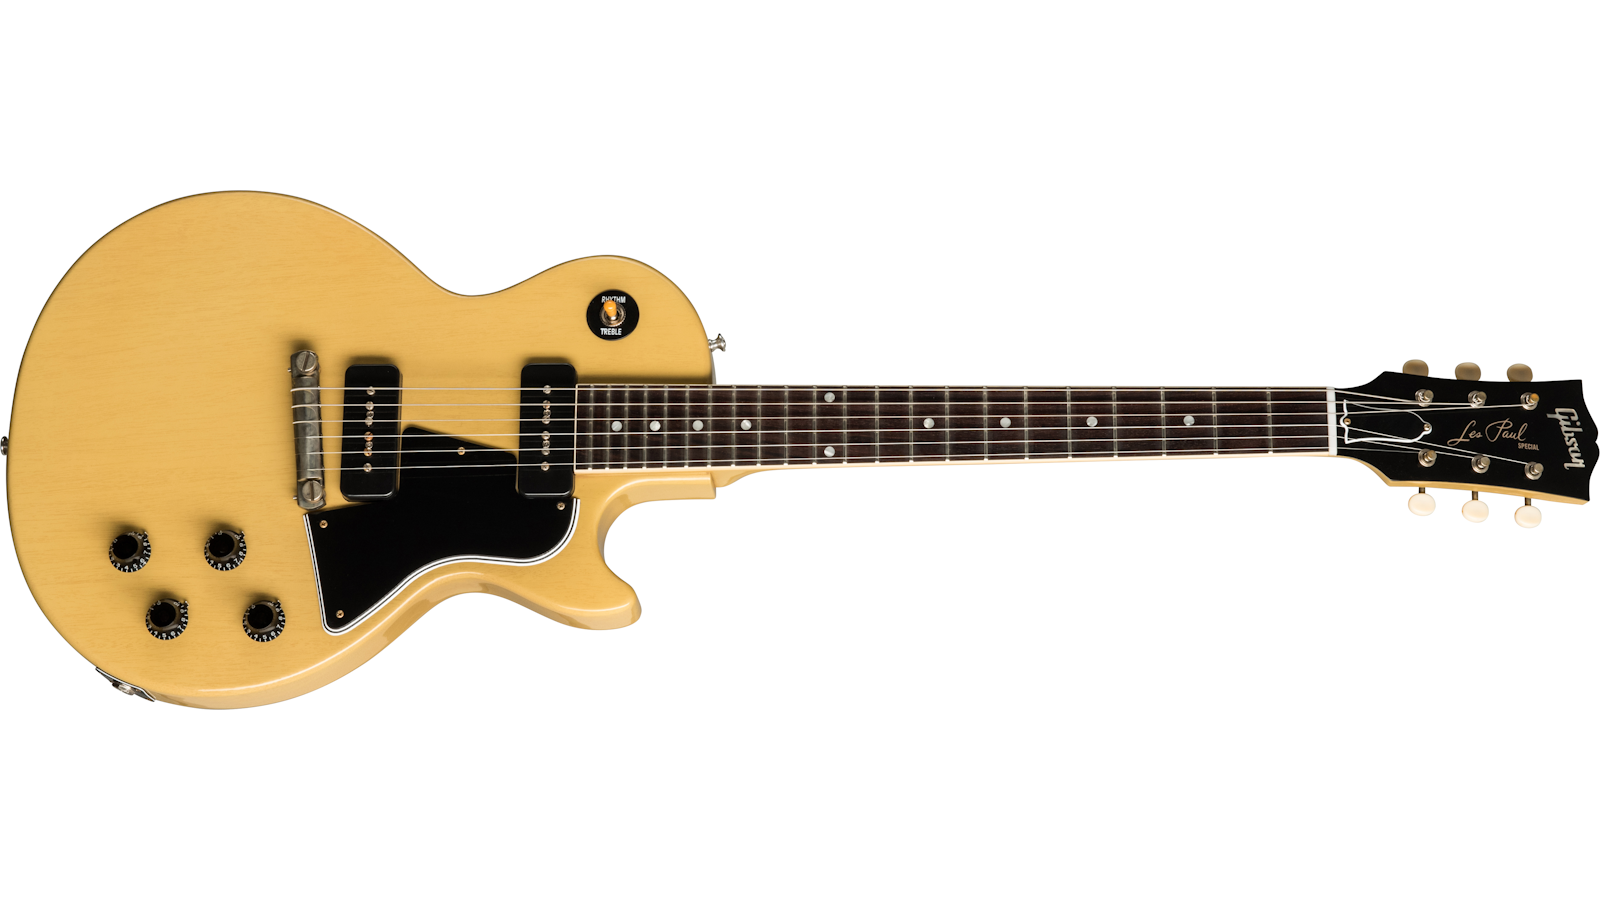 1957 Les Paul Special Single Cut Reissue VOS